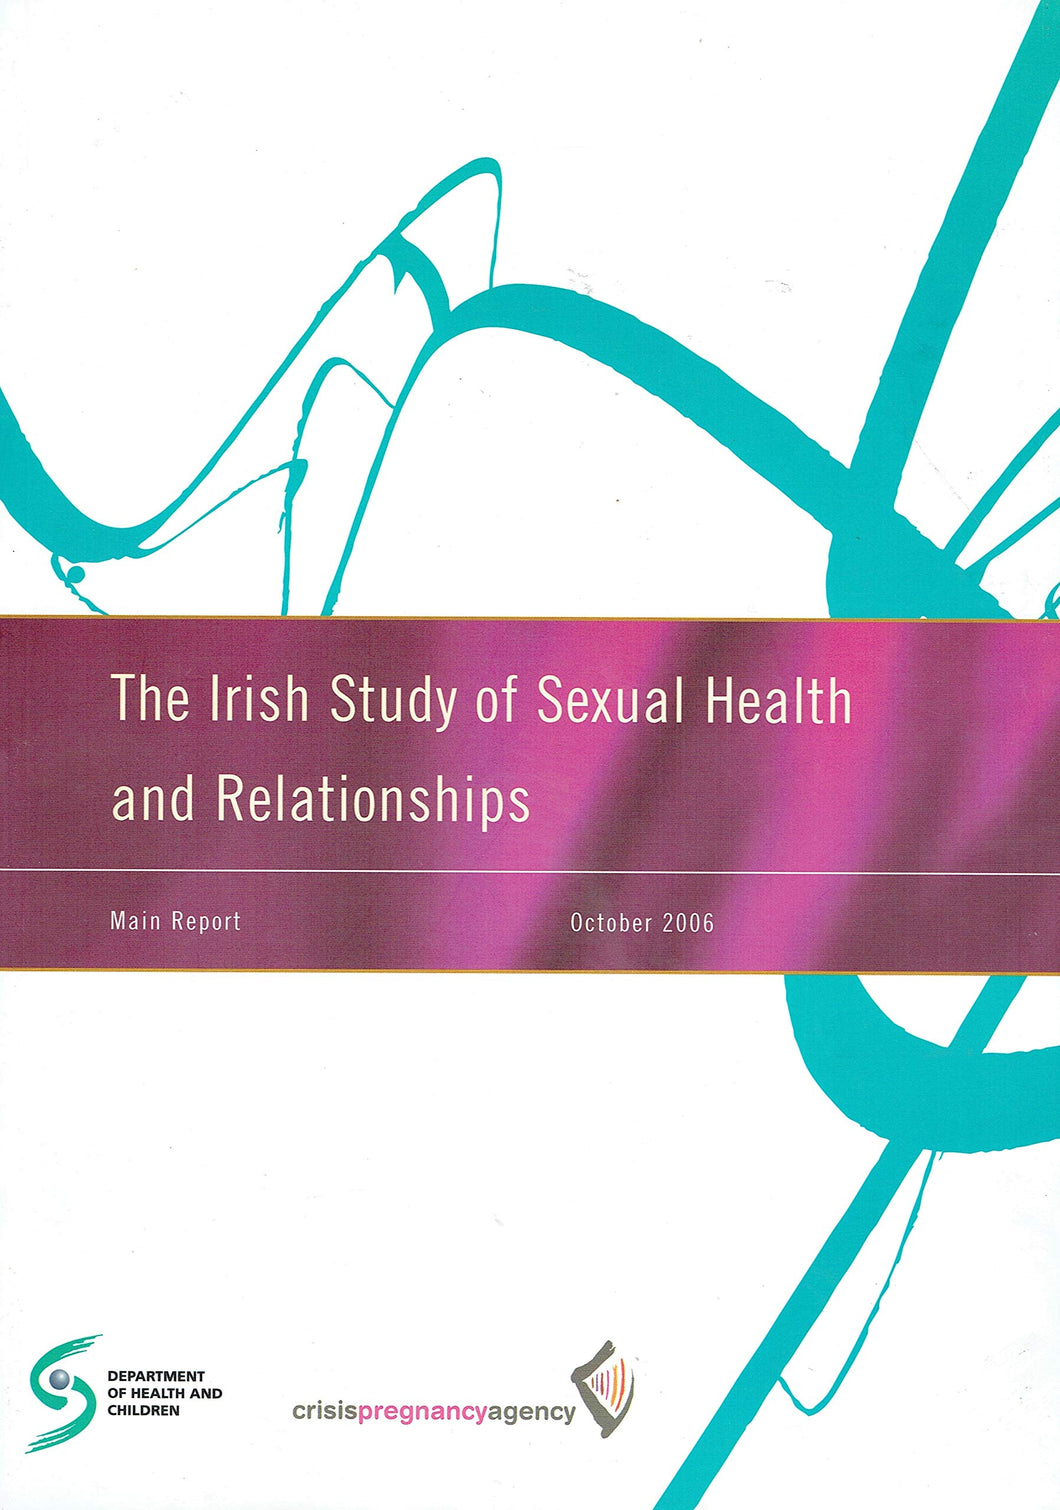 The Irish Study of Sexual Health and Relationships: Main Report, October 2006